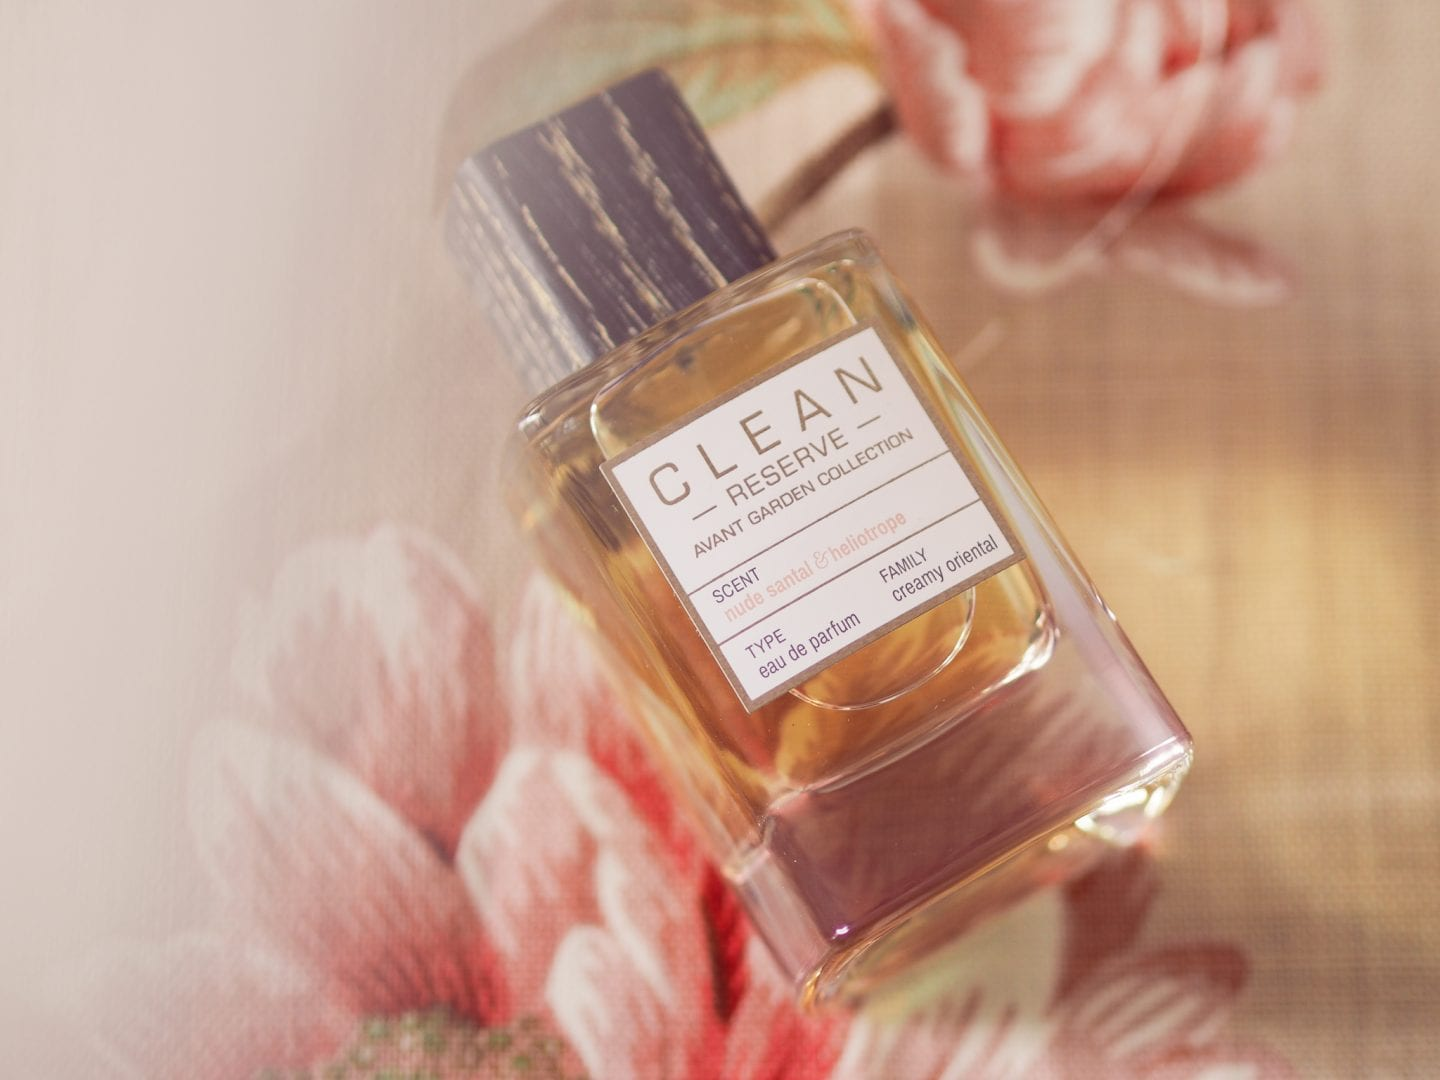 why-you-should-wear-perfume-every-day-is-it-good-to-wear-perfume-every-da